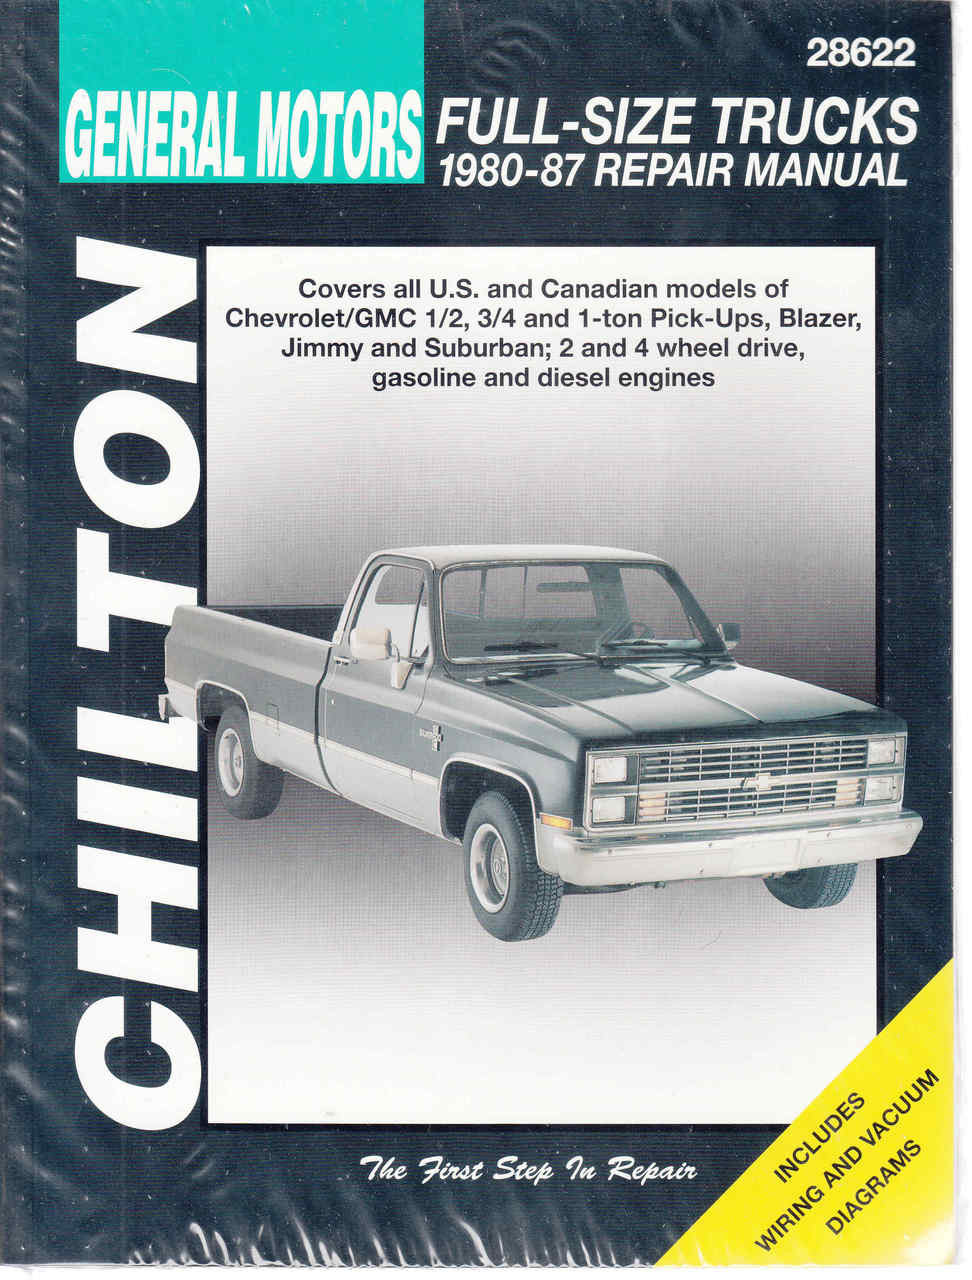 General Motors Full-Size Trucks 1980 - 1987 Workshop Manual